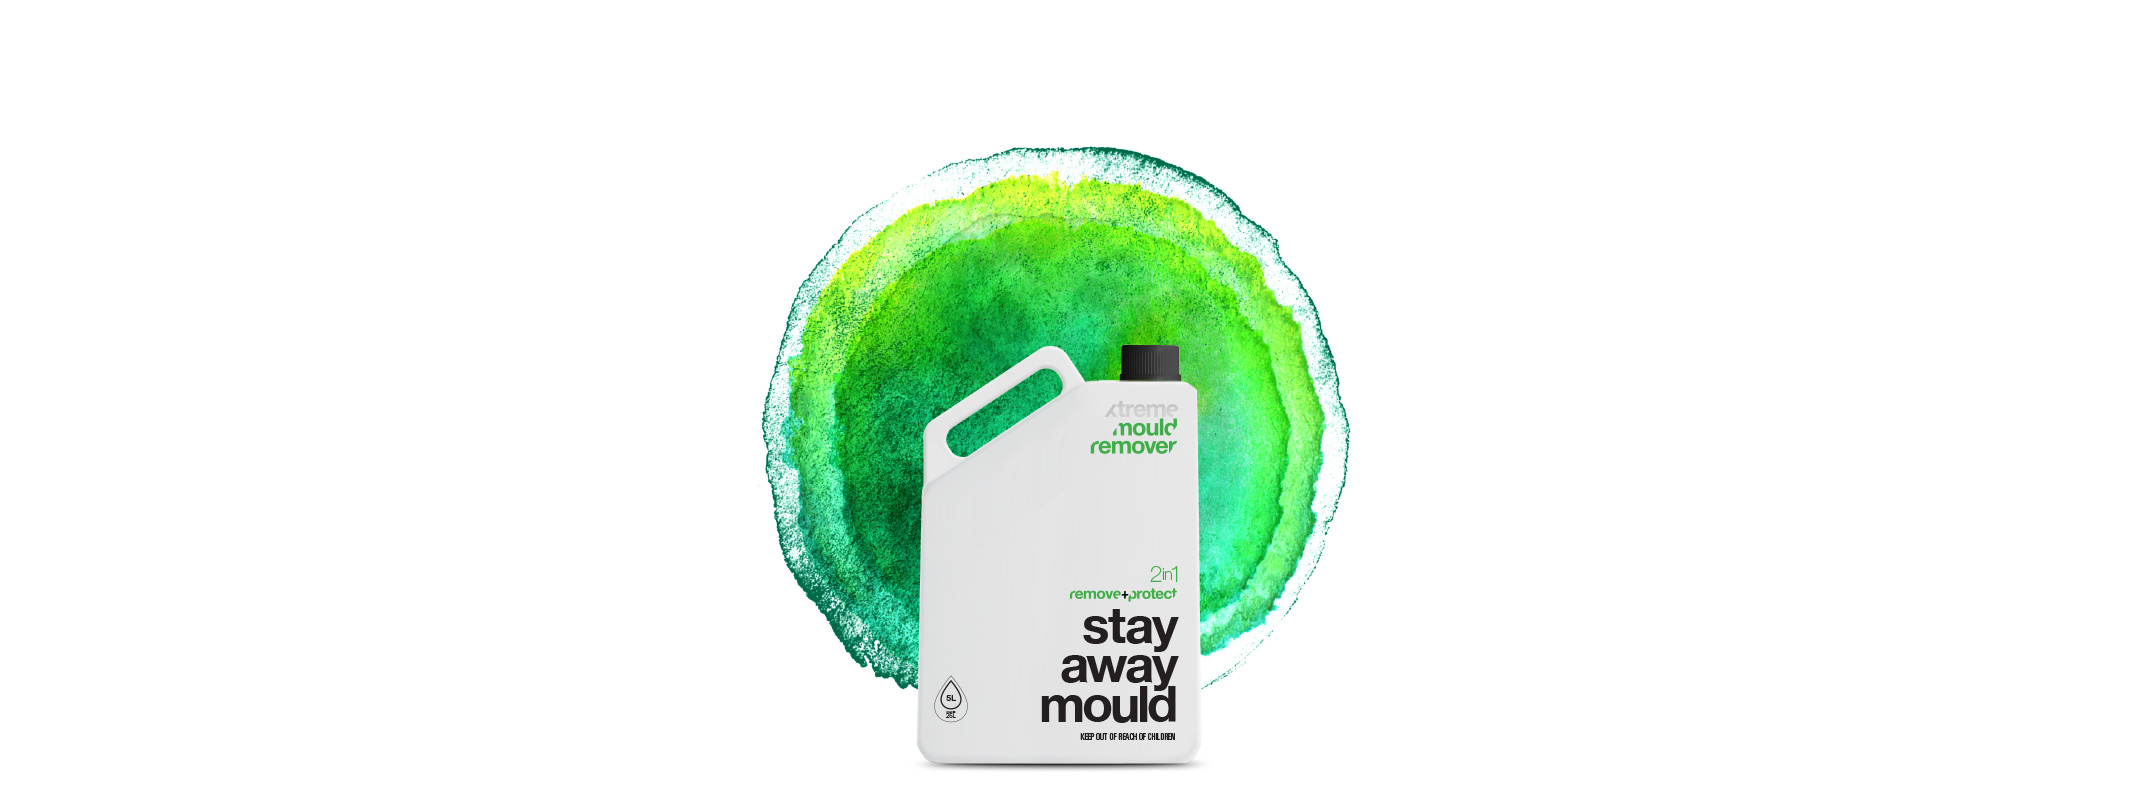 xtreme_mould_remover_banner